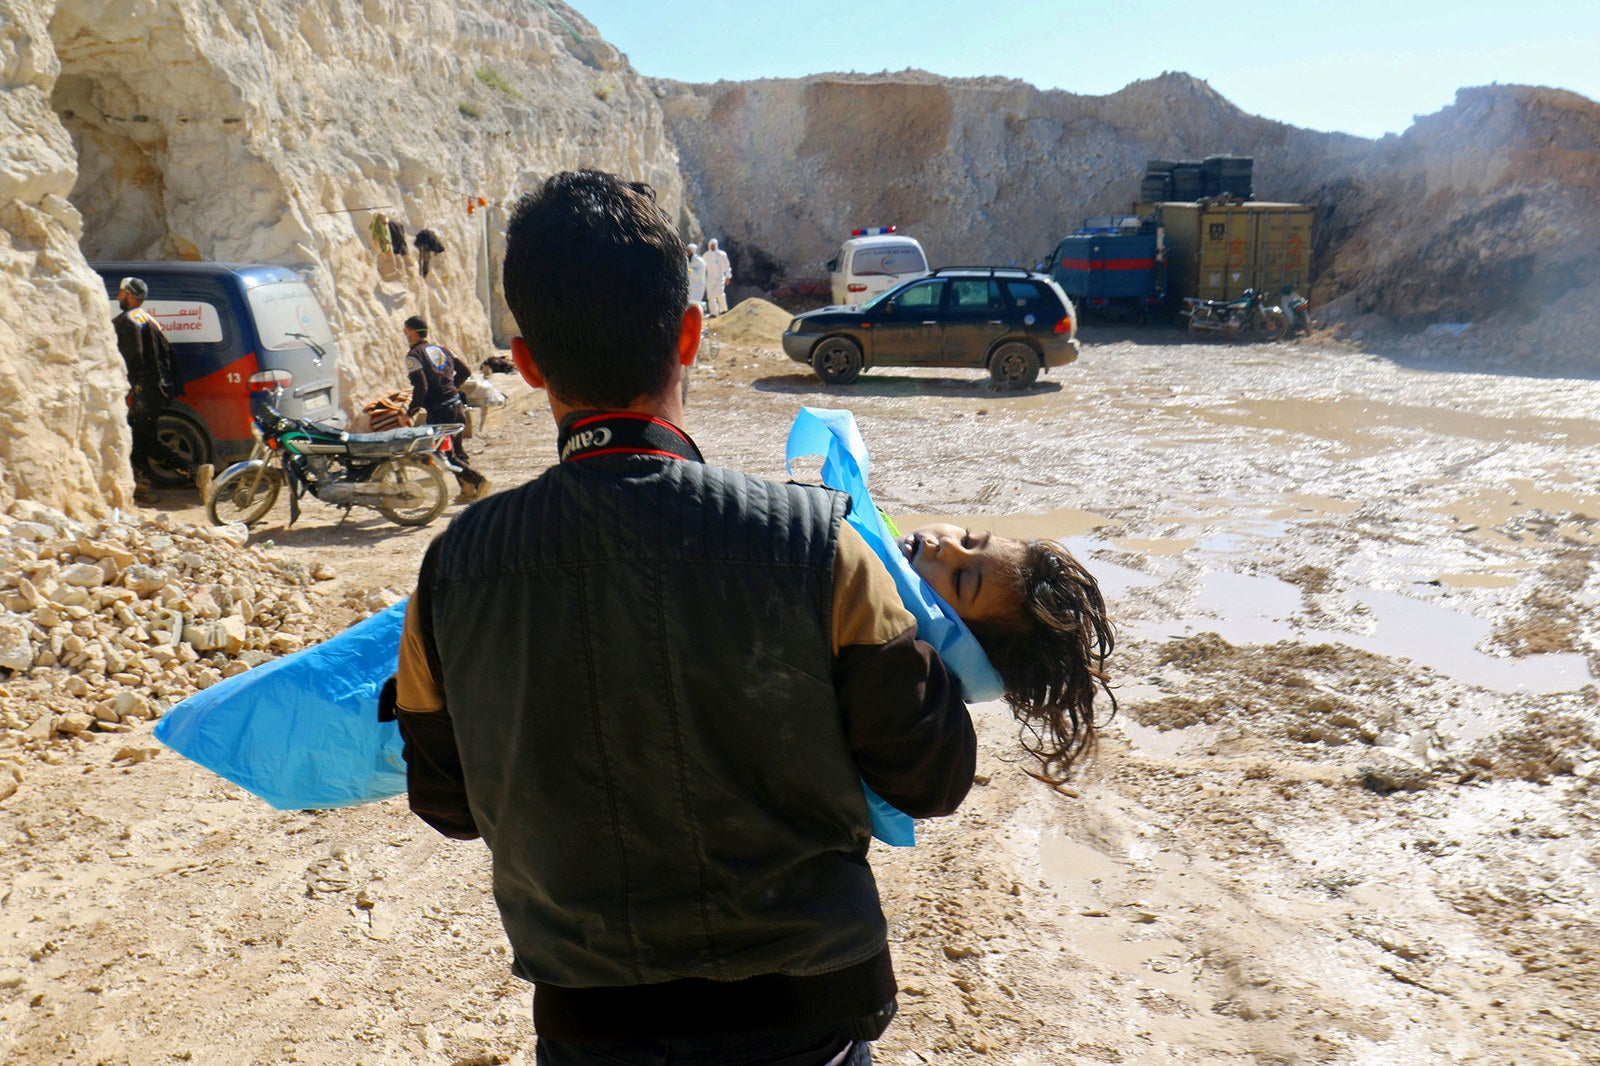 A man carries the body of a dead child after what rescue workers described as a suspected gas attack in the town of Khan Sheikhoun, Syria, on April 4.